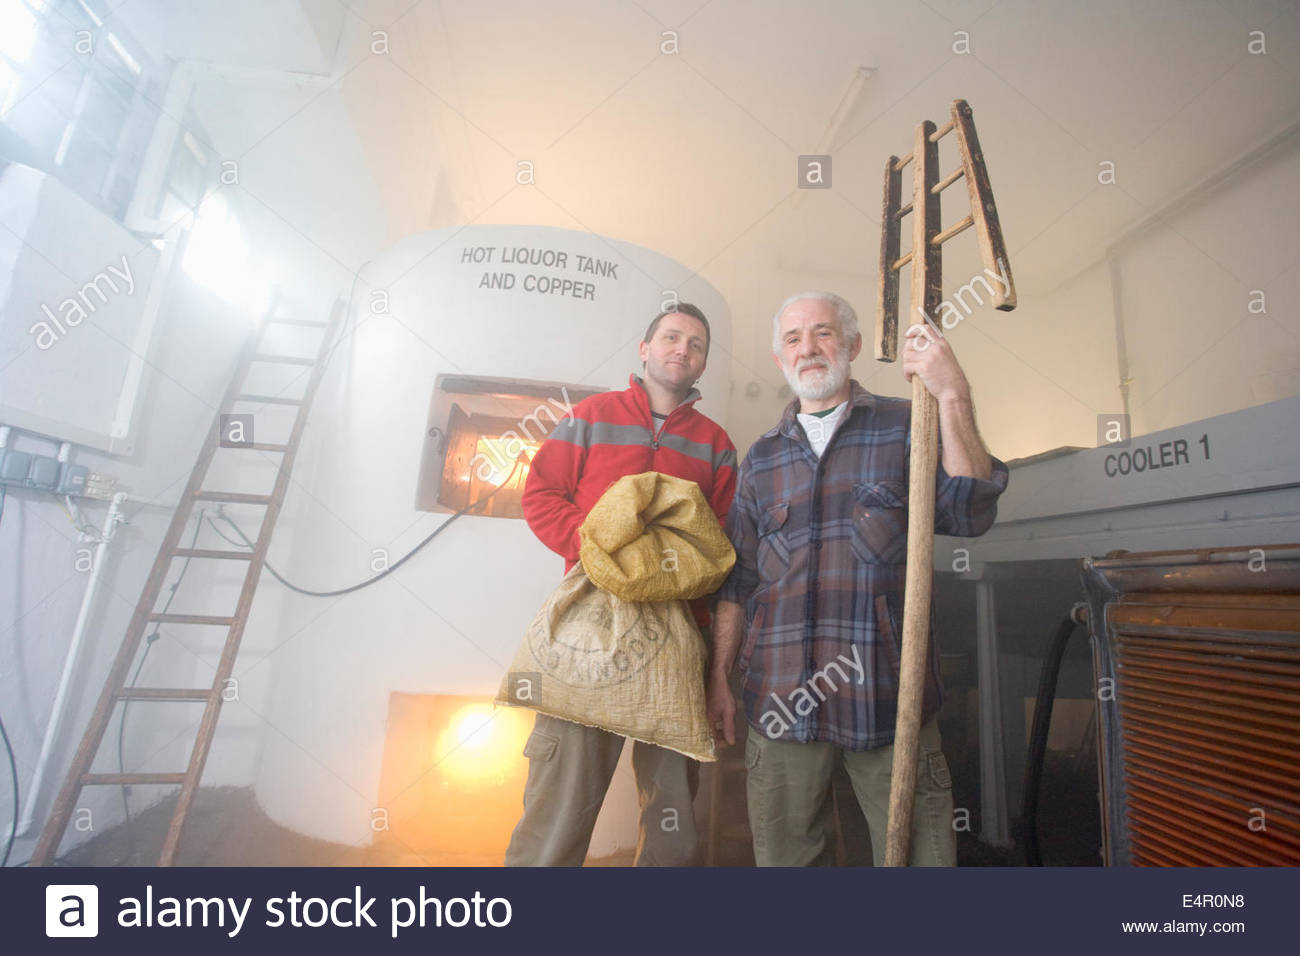 Two brewers pose for a photograph by the Hot Liquor Tank at the original brewhouse at Traquair House Brewery, Traquair - Stock Image